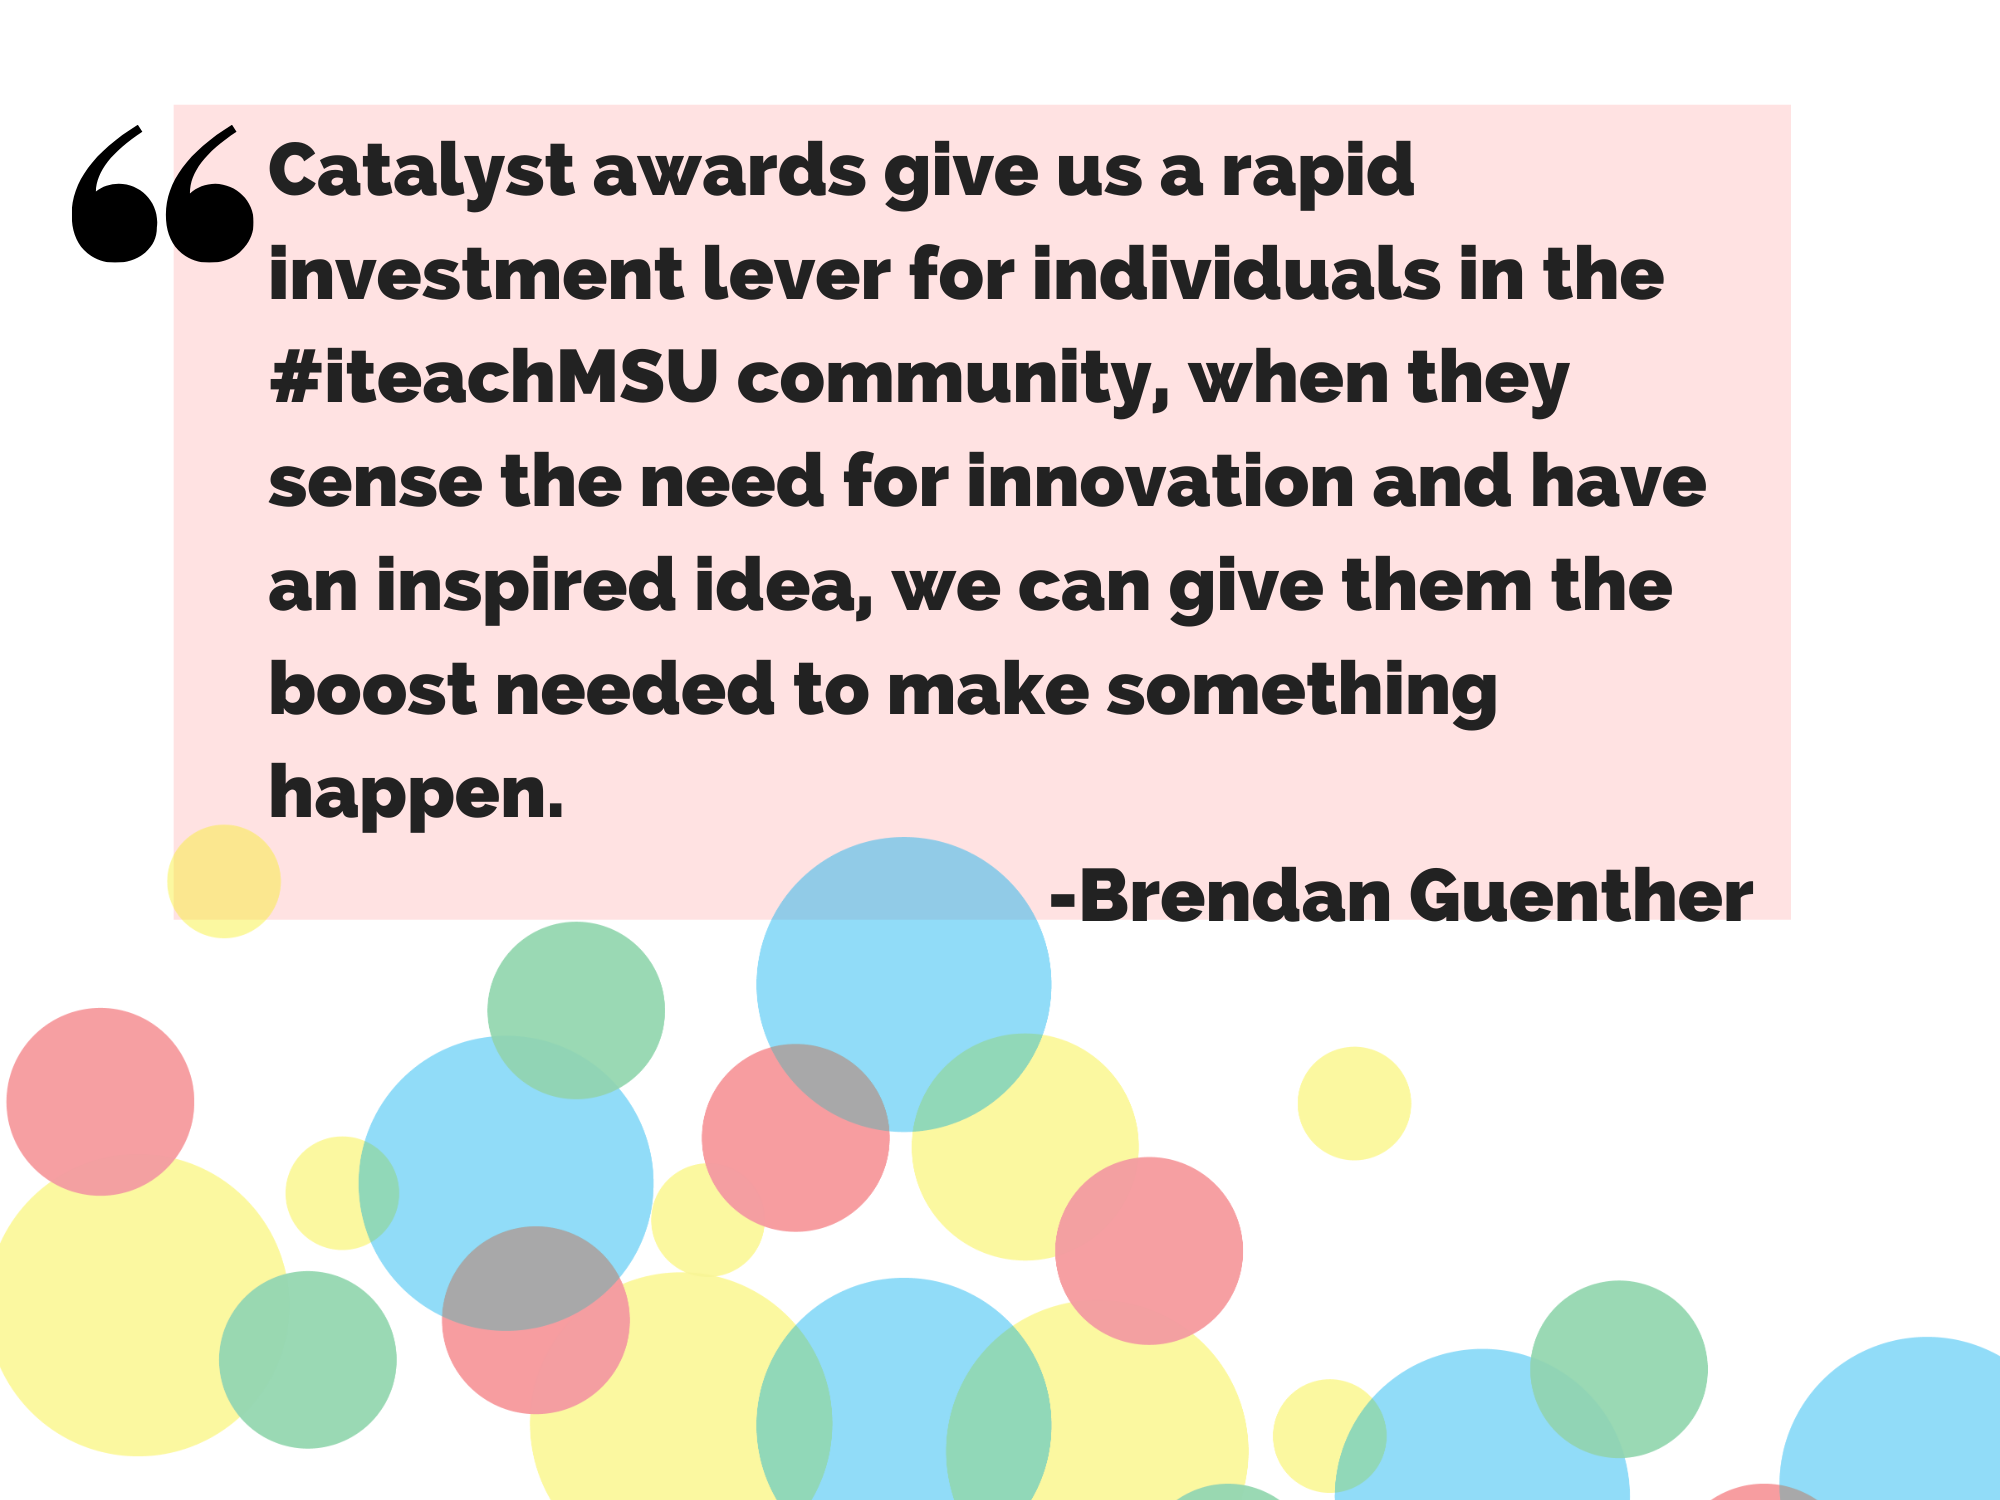 Catalyst awards give us a rapid investment lever for individuals in the #iteachmsu community, when they sense the need for innovation and have an inspired idea, we can give them the boost they need to make something happen, said Brendan Guenther